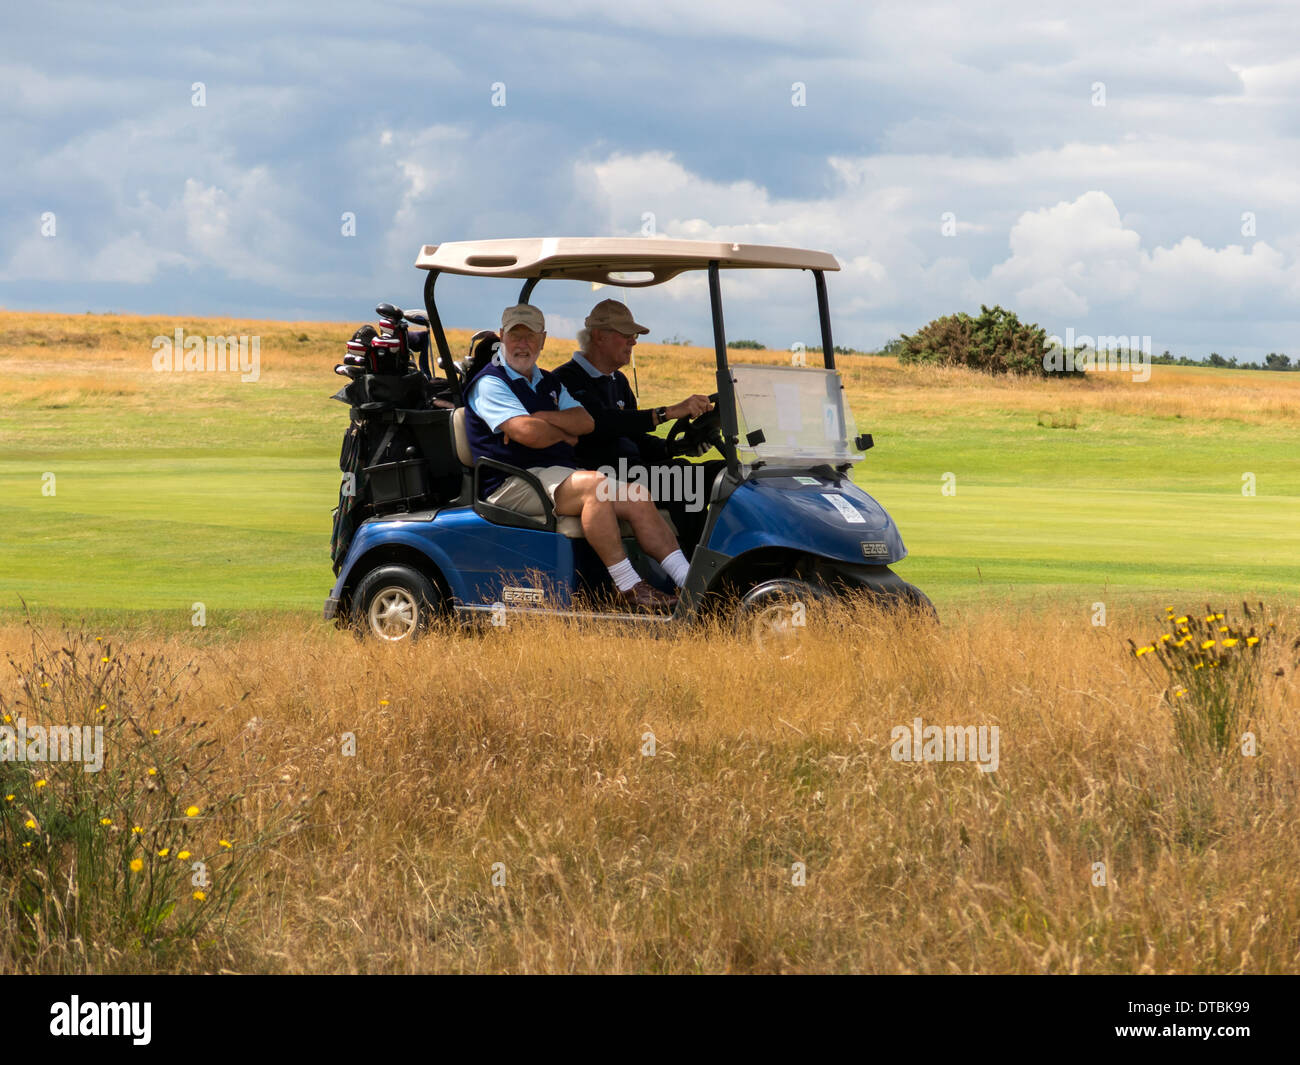 Men riding in golf buggy across golf course in Cromer Norfolk England - Stock Image